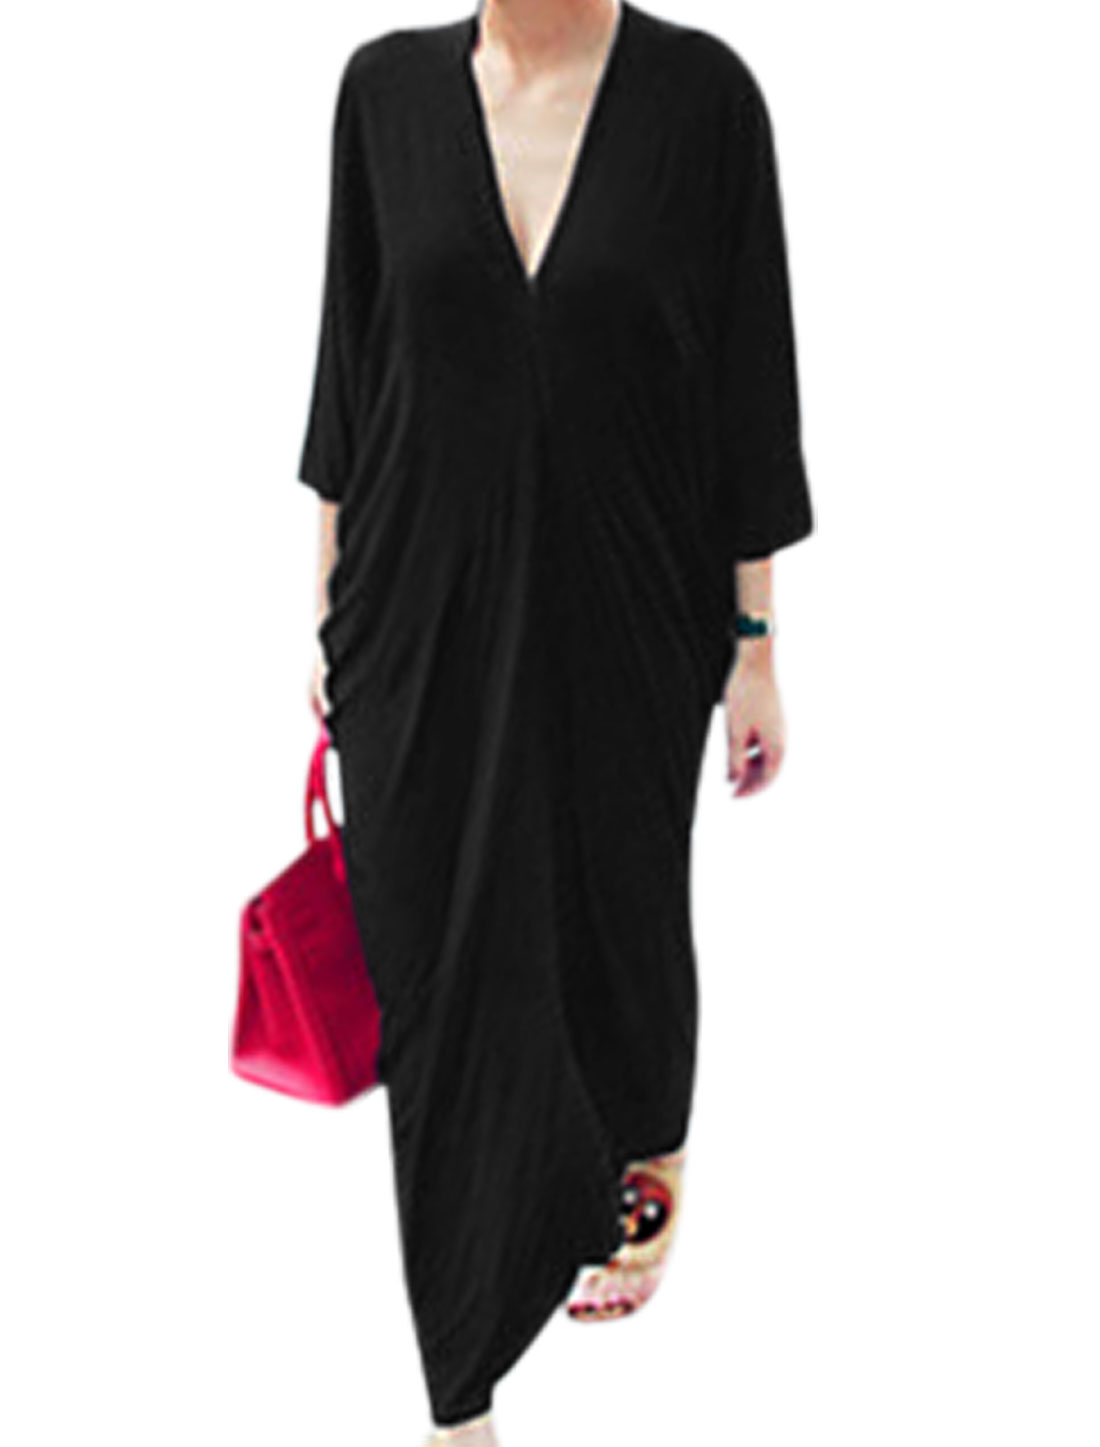 Lady Deep V Neck Ruched Detail Loose Fit Casual Maxi Dress Black M